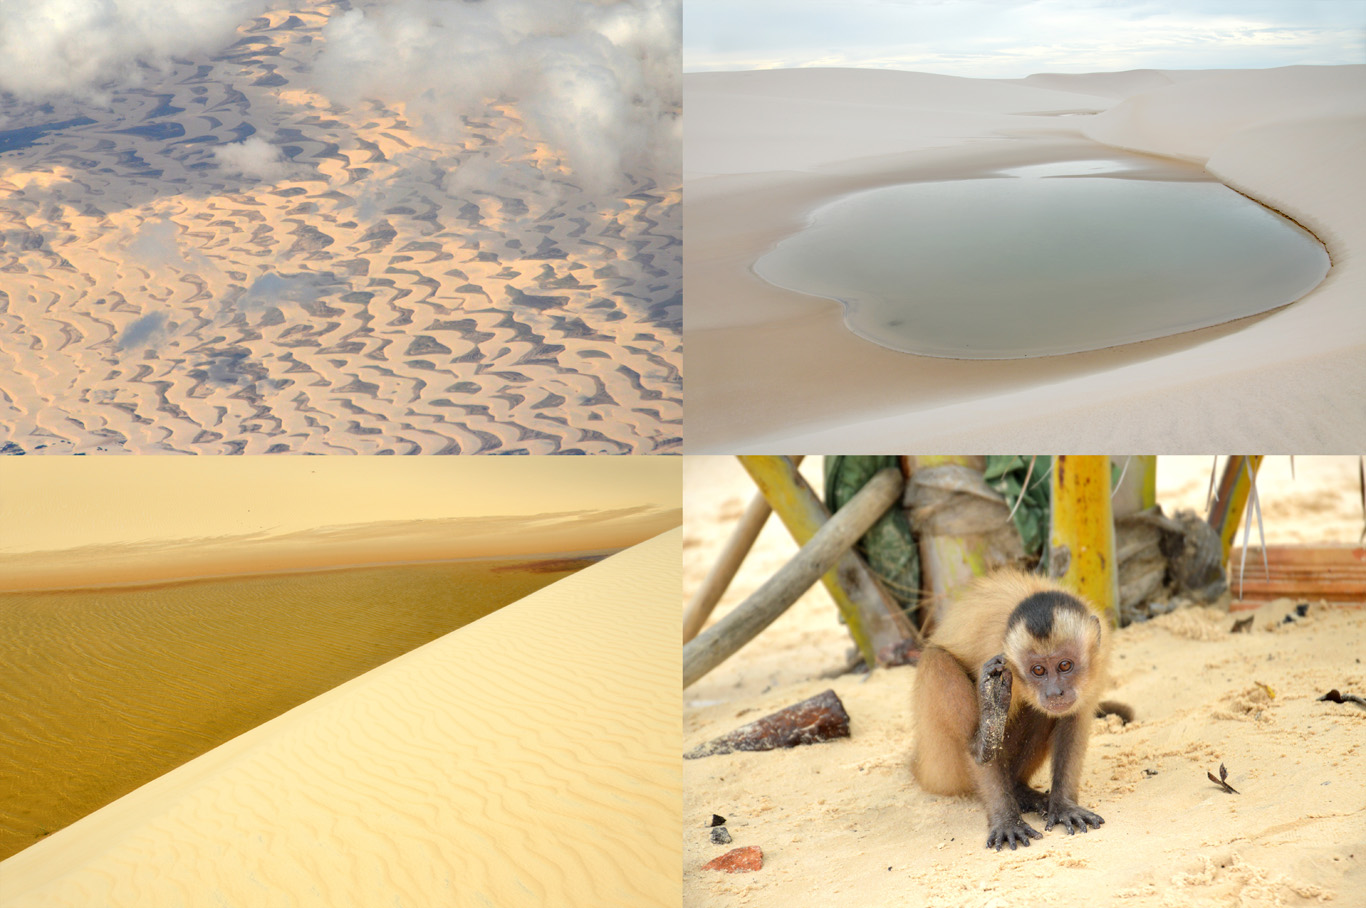 Lencois Maranhenses - first photo: the view from an airplane